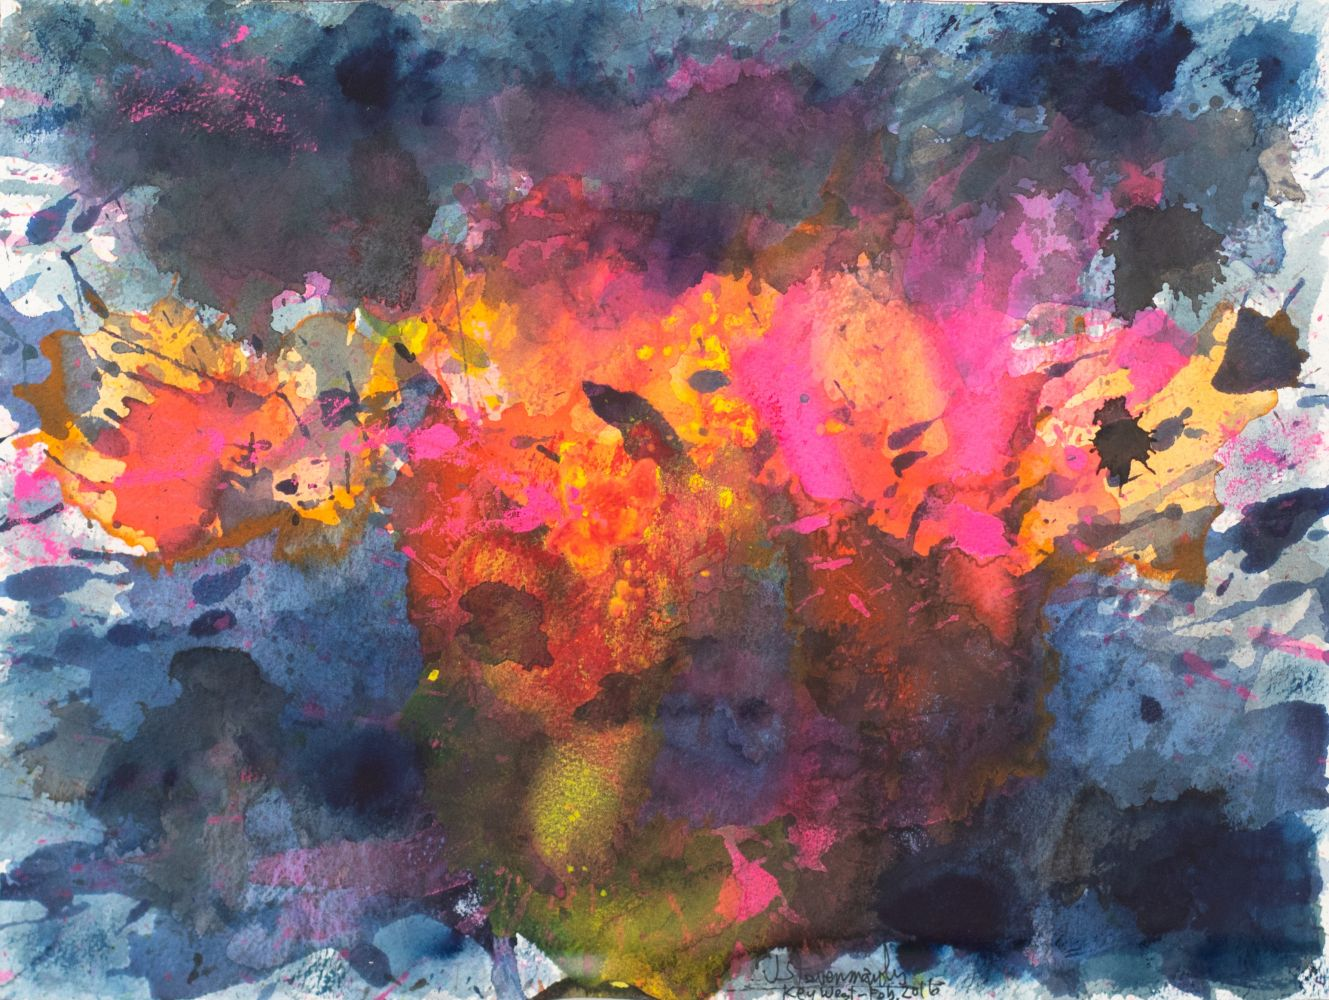 J. Steven Manolis, Key West-Splash (Sunset) 12.16.05, 2016, Watercolor, Acrylic and Gouache on Arches paper, 12 x 16 inches, Abstract expressionism paintings for sale at Manolis Projects Art Gallery, Miami, Fl